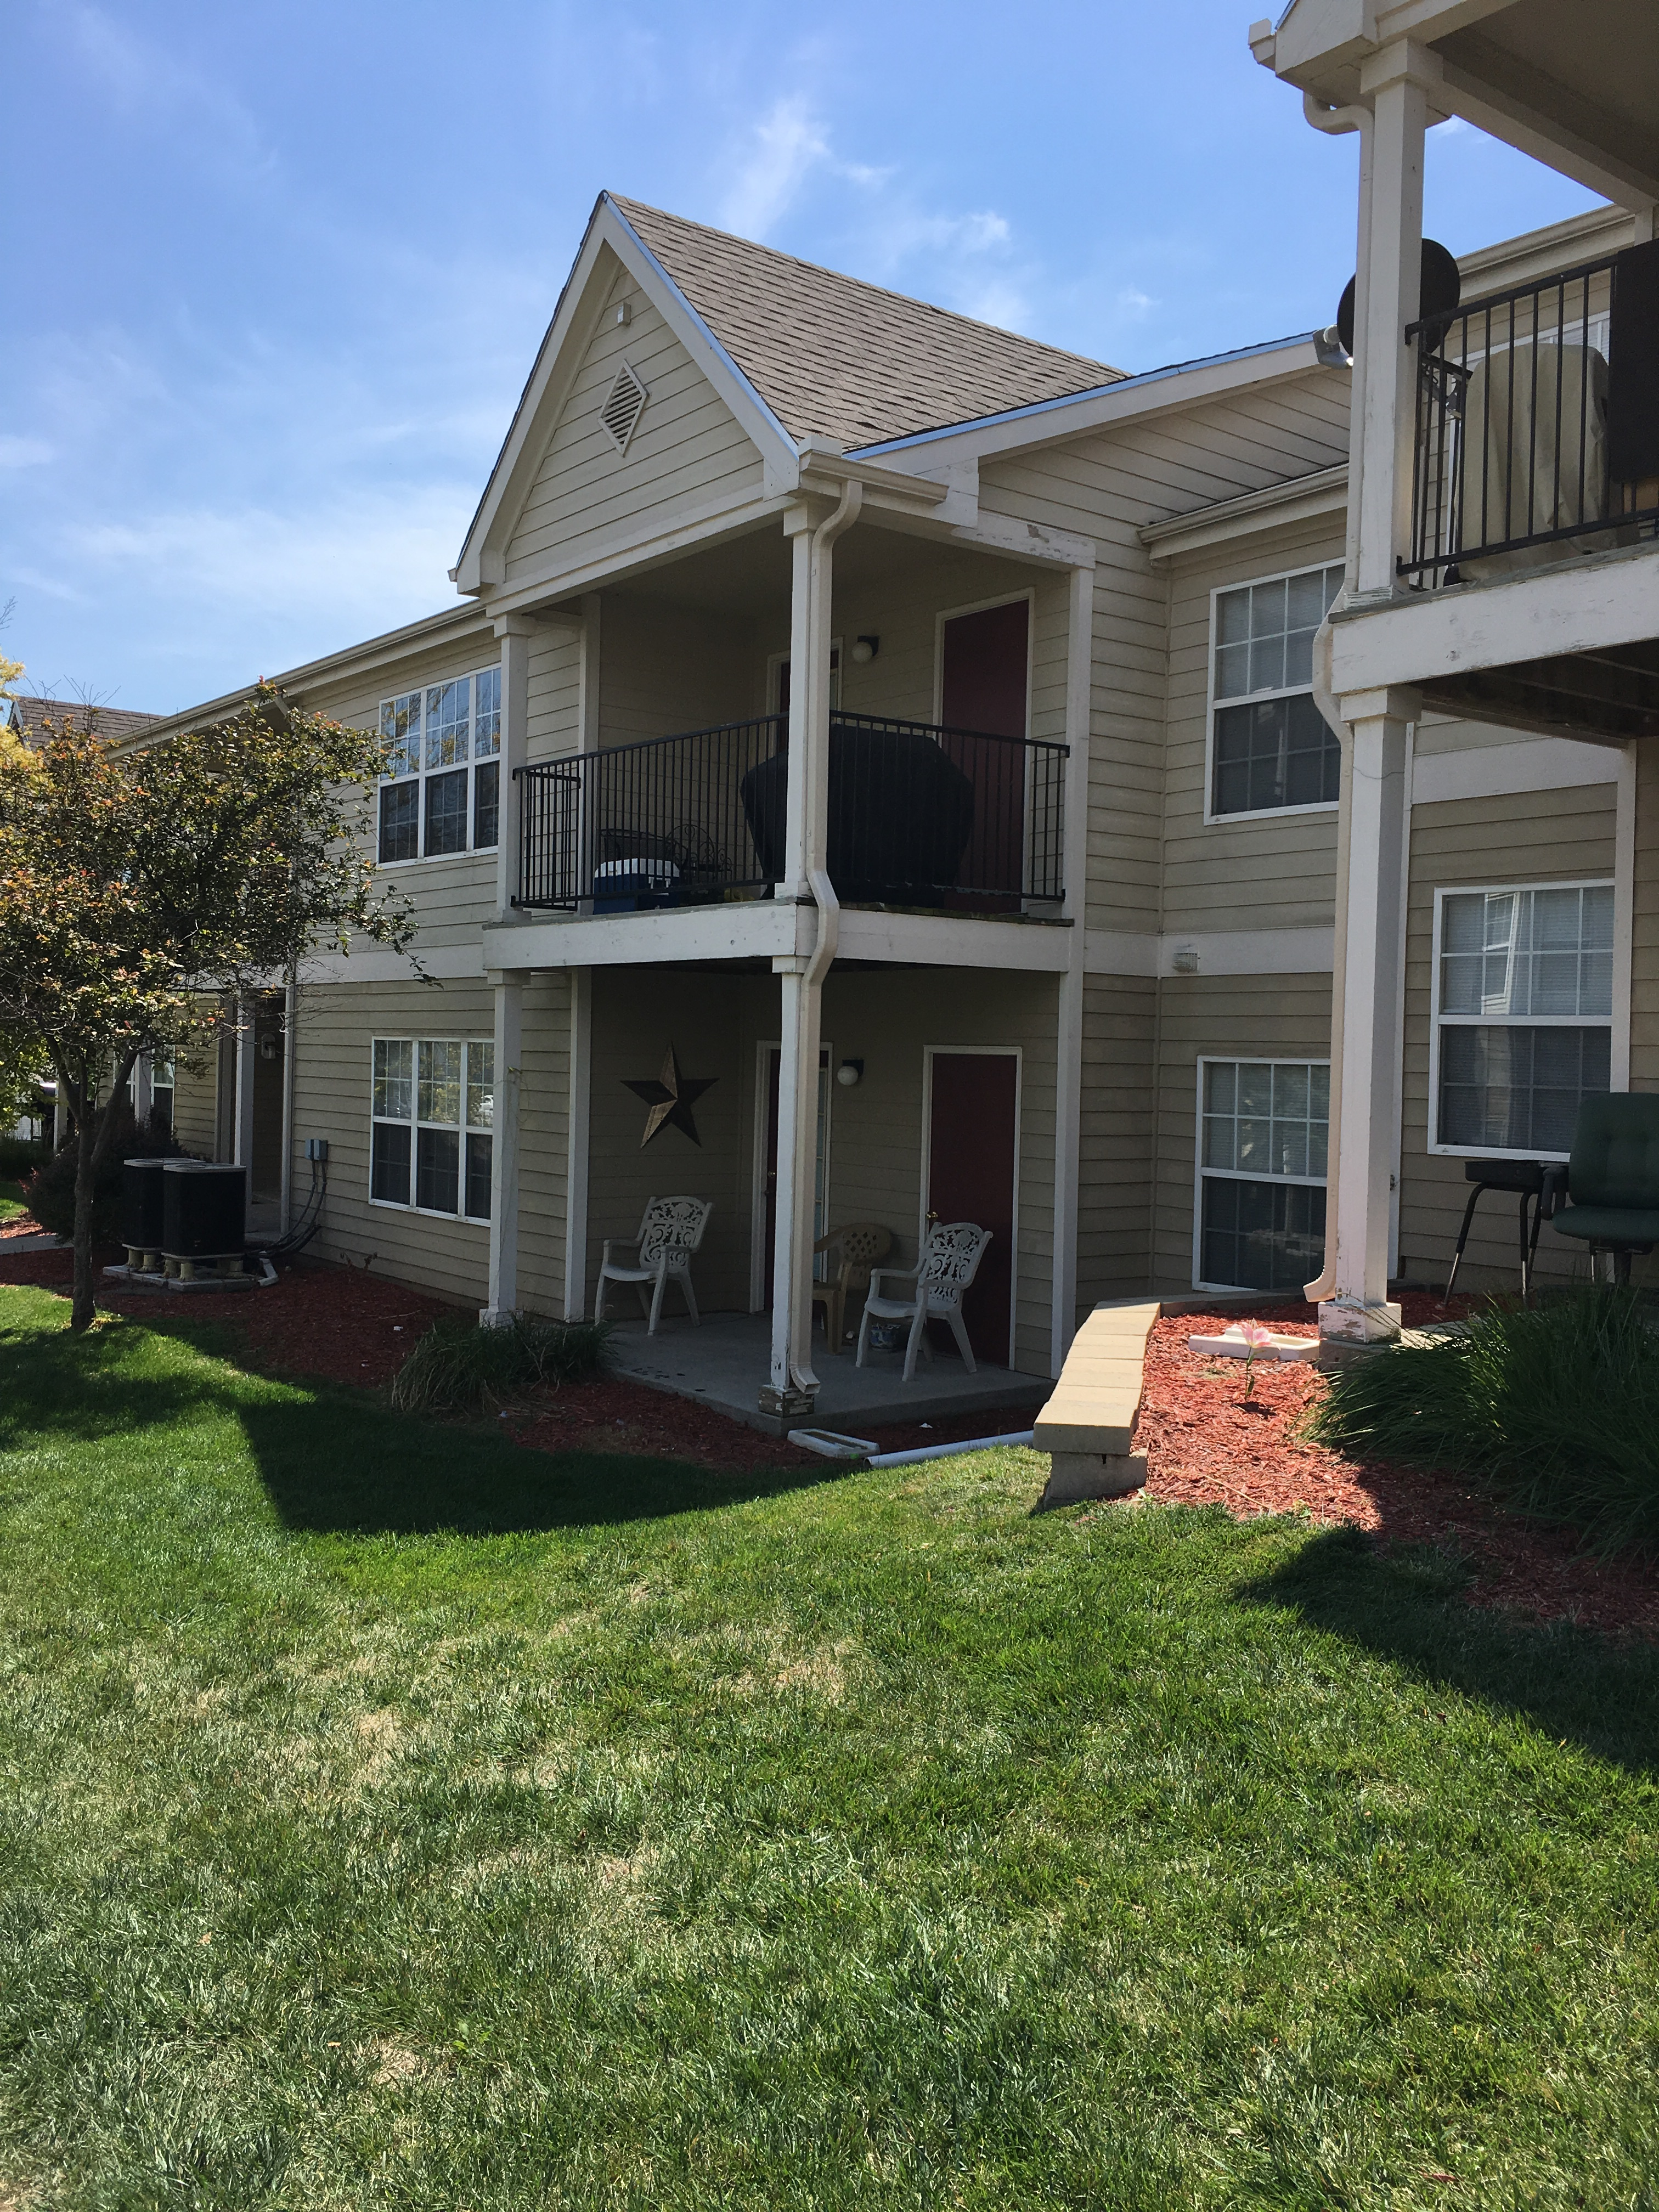 Mccormack baron salazar waterbrook apartments - Two bedroom apartments lincoln ne ...